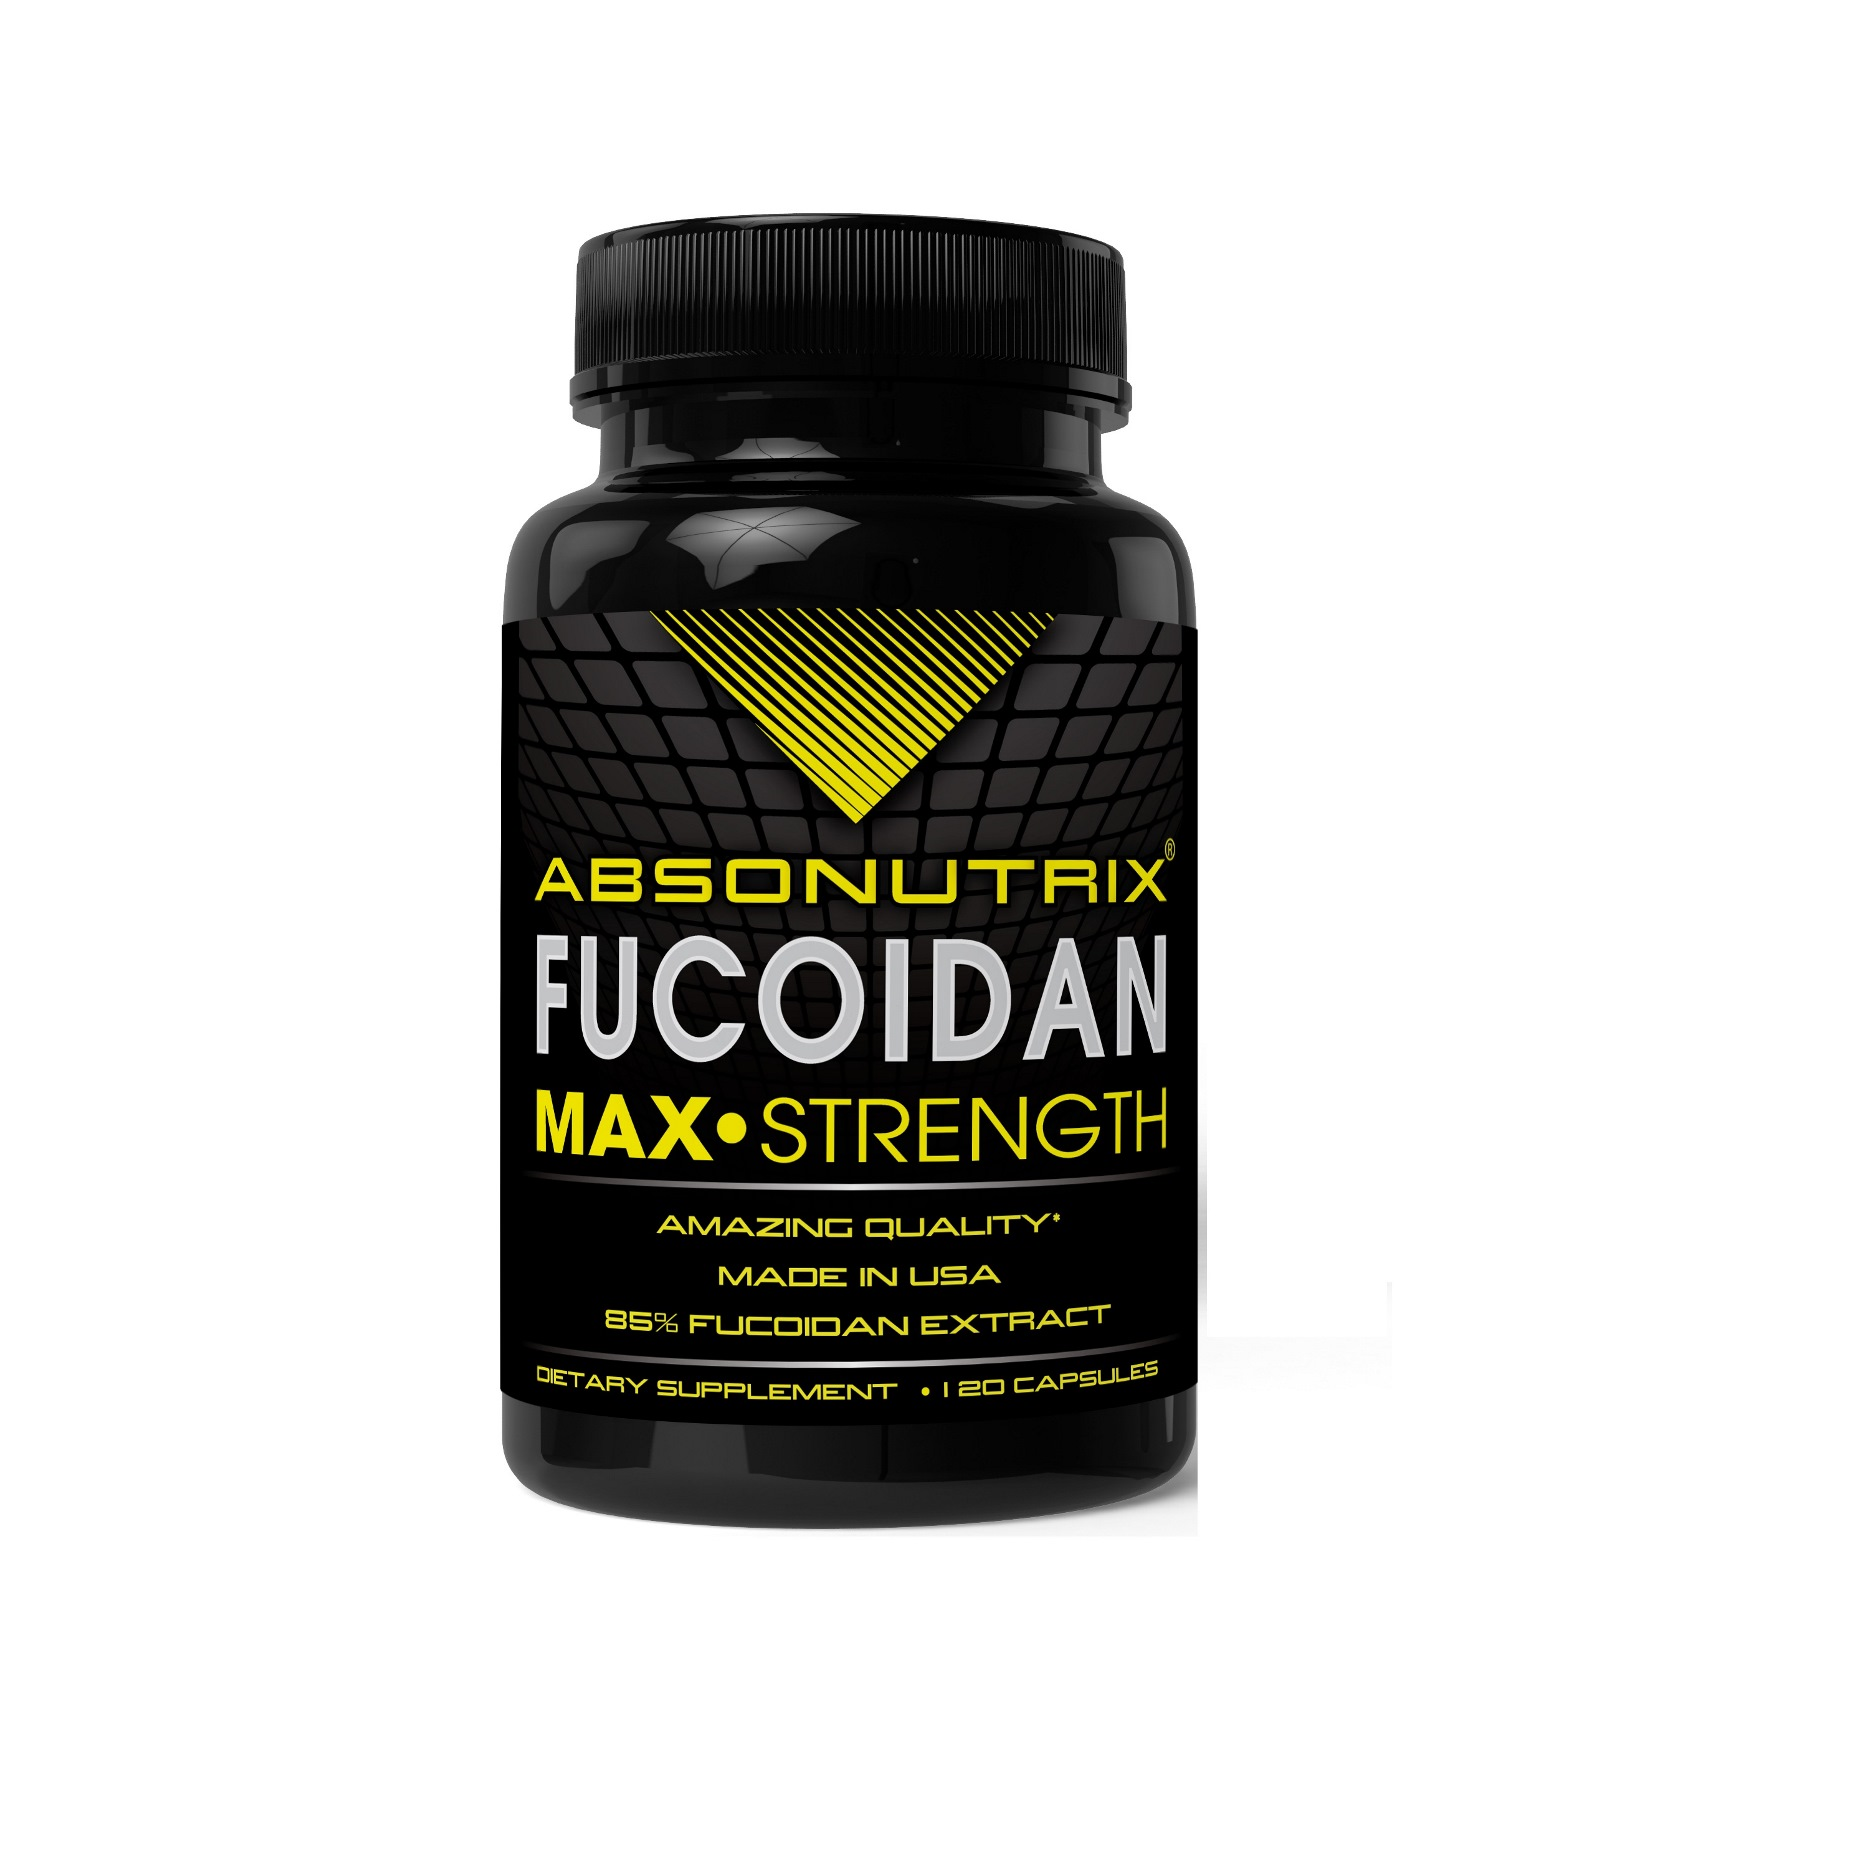 Absonutrix Fucoidan Max Strength